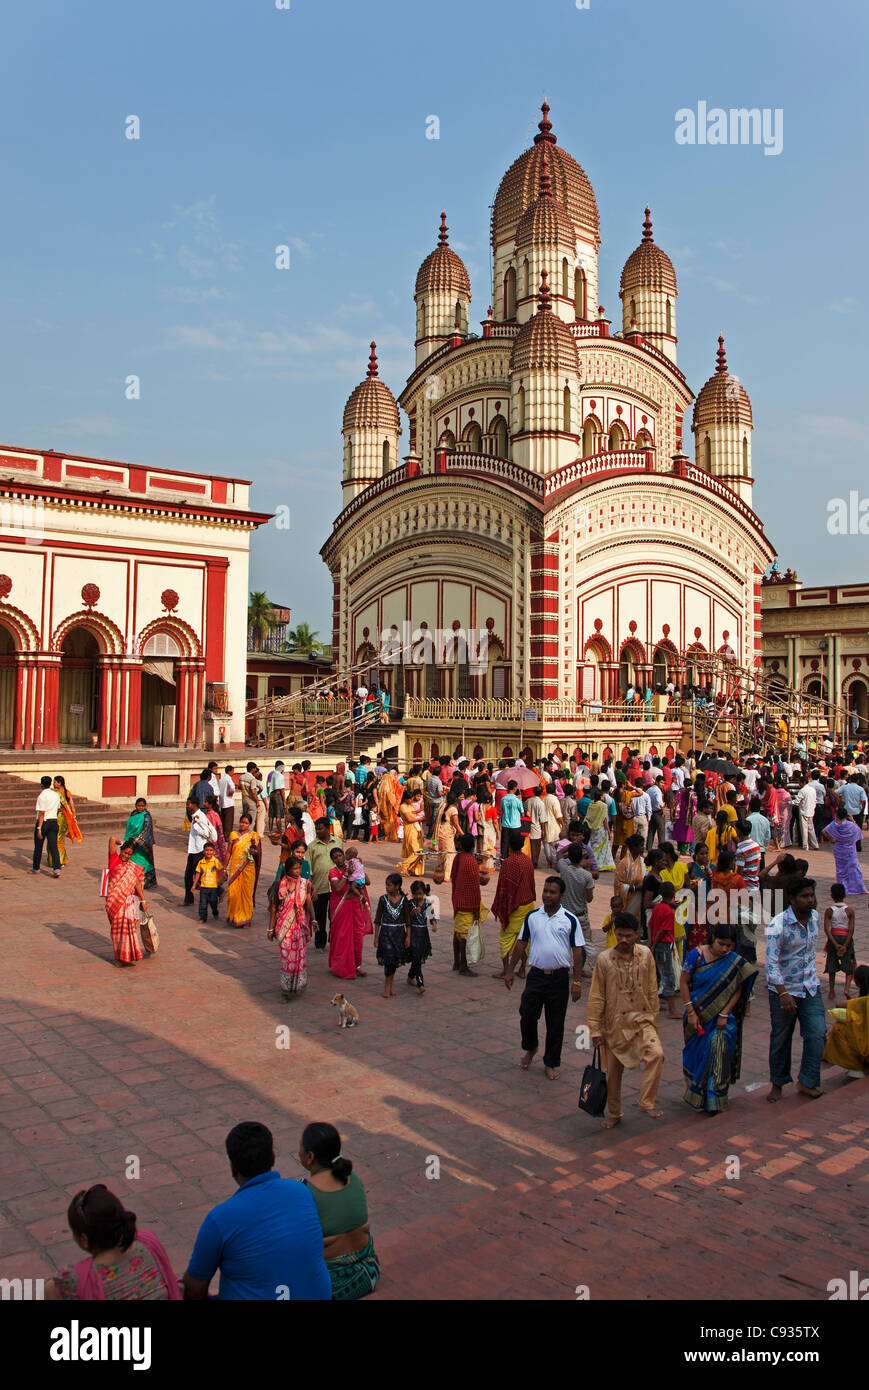 The Dakshineswar Kali Temple on the outskirts north of Kolkata was founded in 1855 by Rani Rashmani. - Stock Image